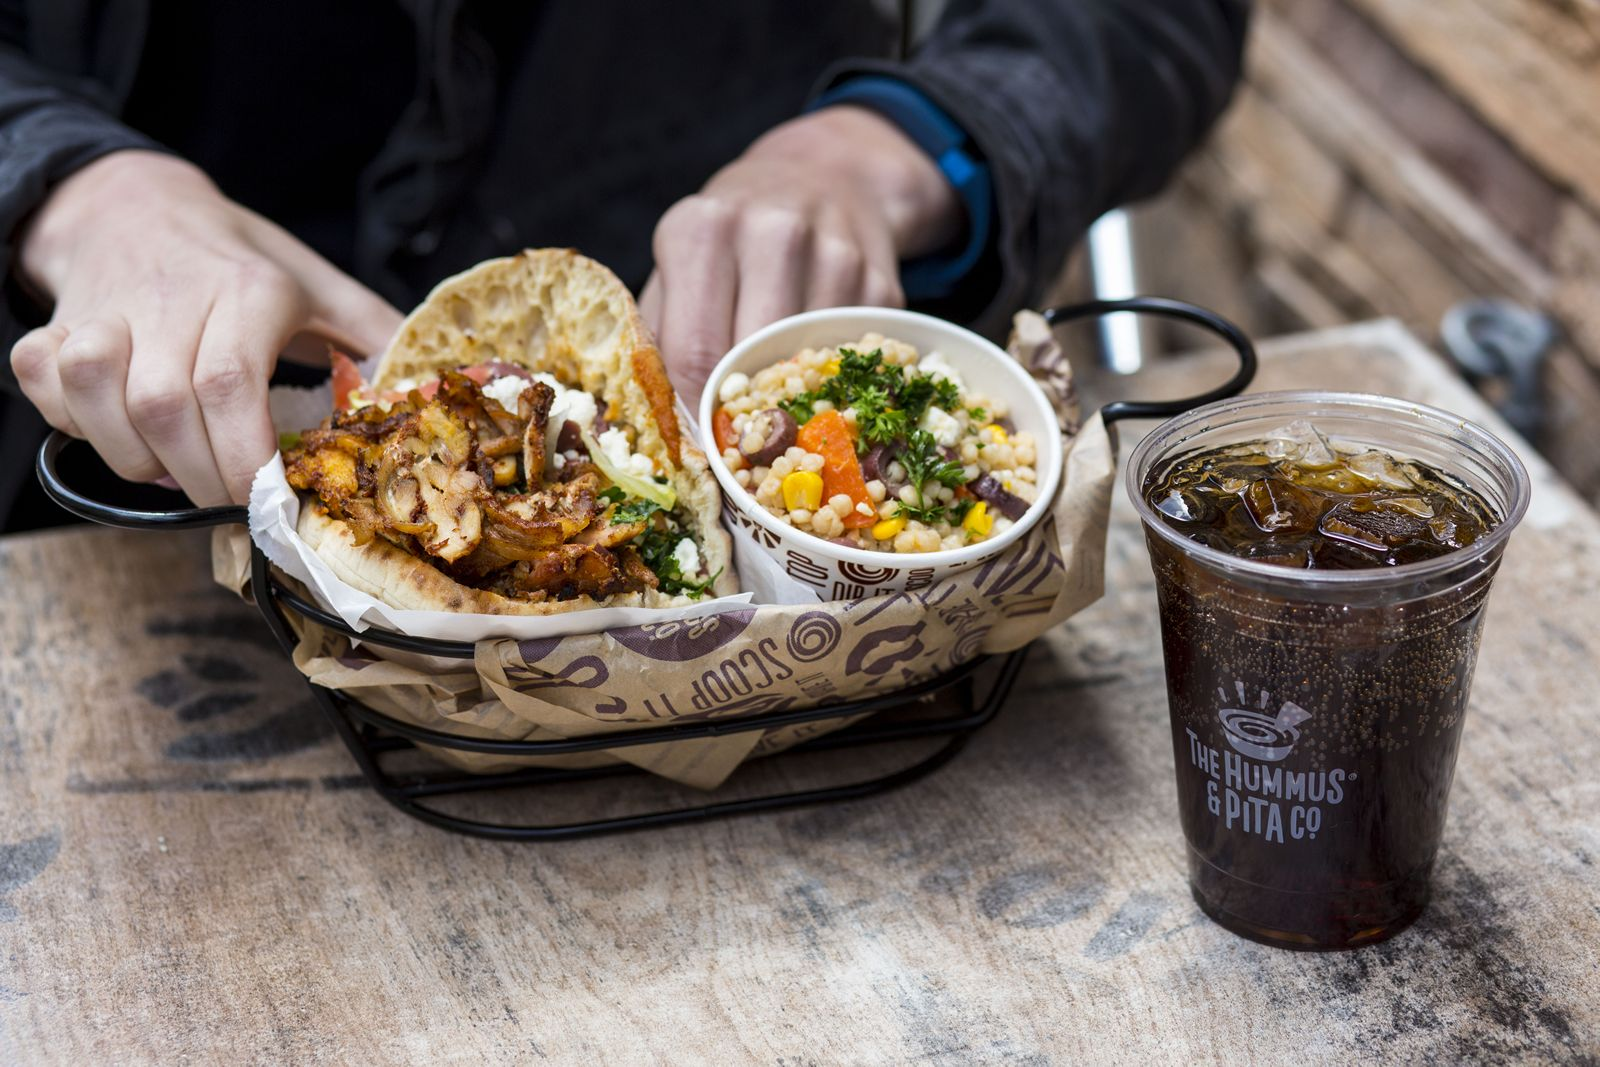 The Hummus & Pita Co., the fastest growing Mediterranean concept in the U.S., has announced a bicoastal expansion that will bring 3 stores to Los Angeles before year's end.